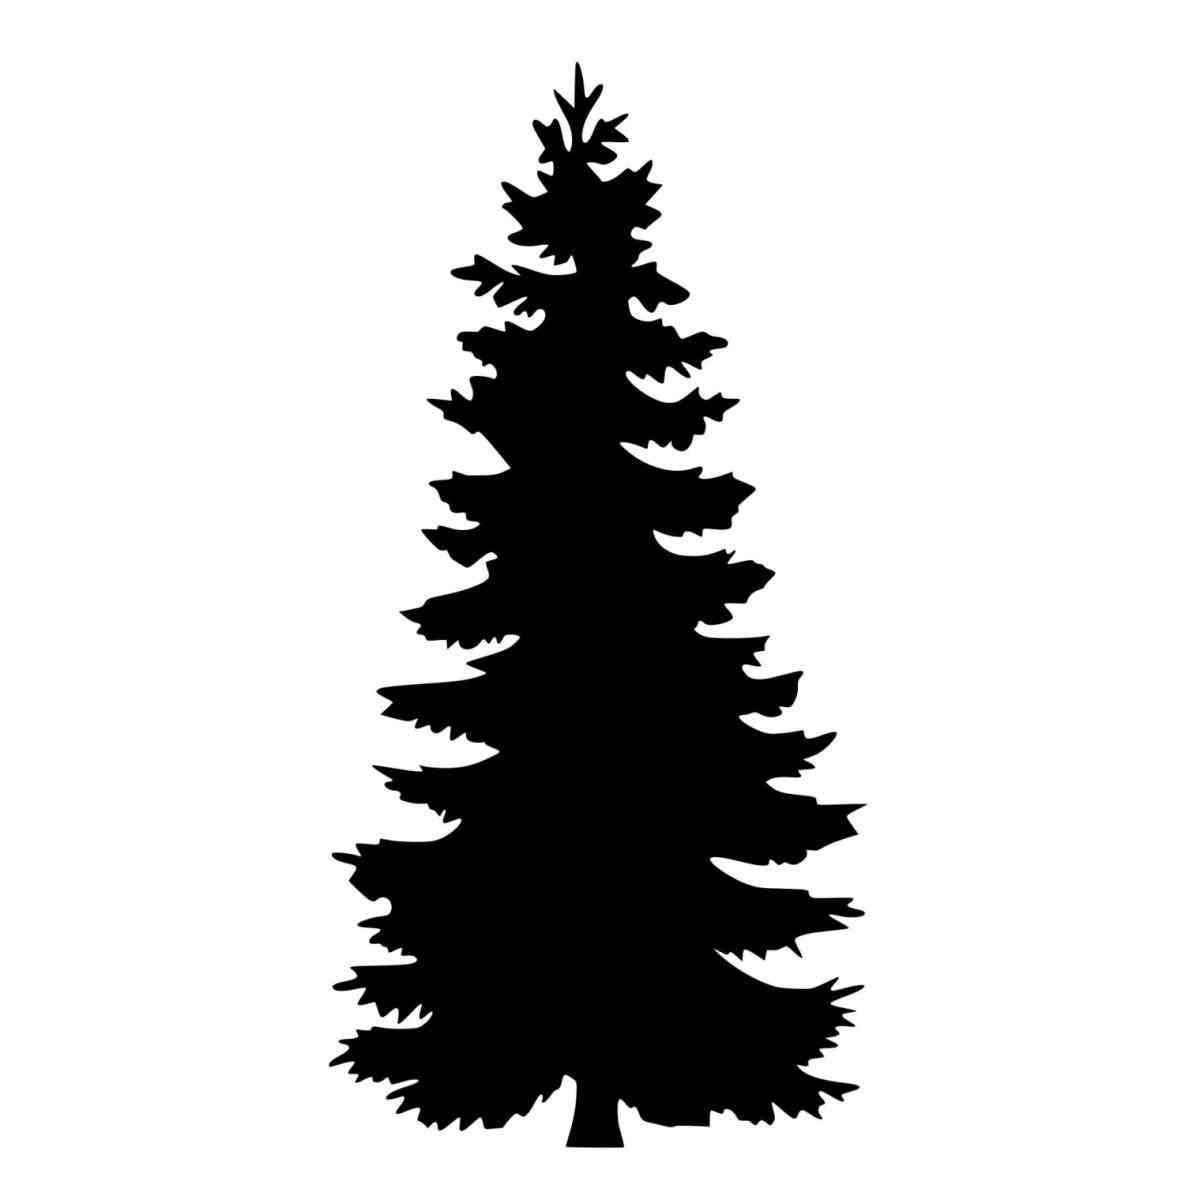 Simple Pine Tree Silhouette at GetDrawings.com | Free for ...